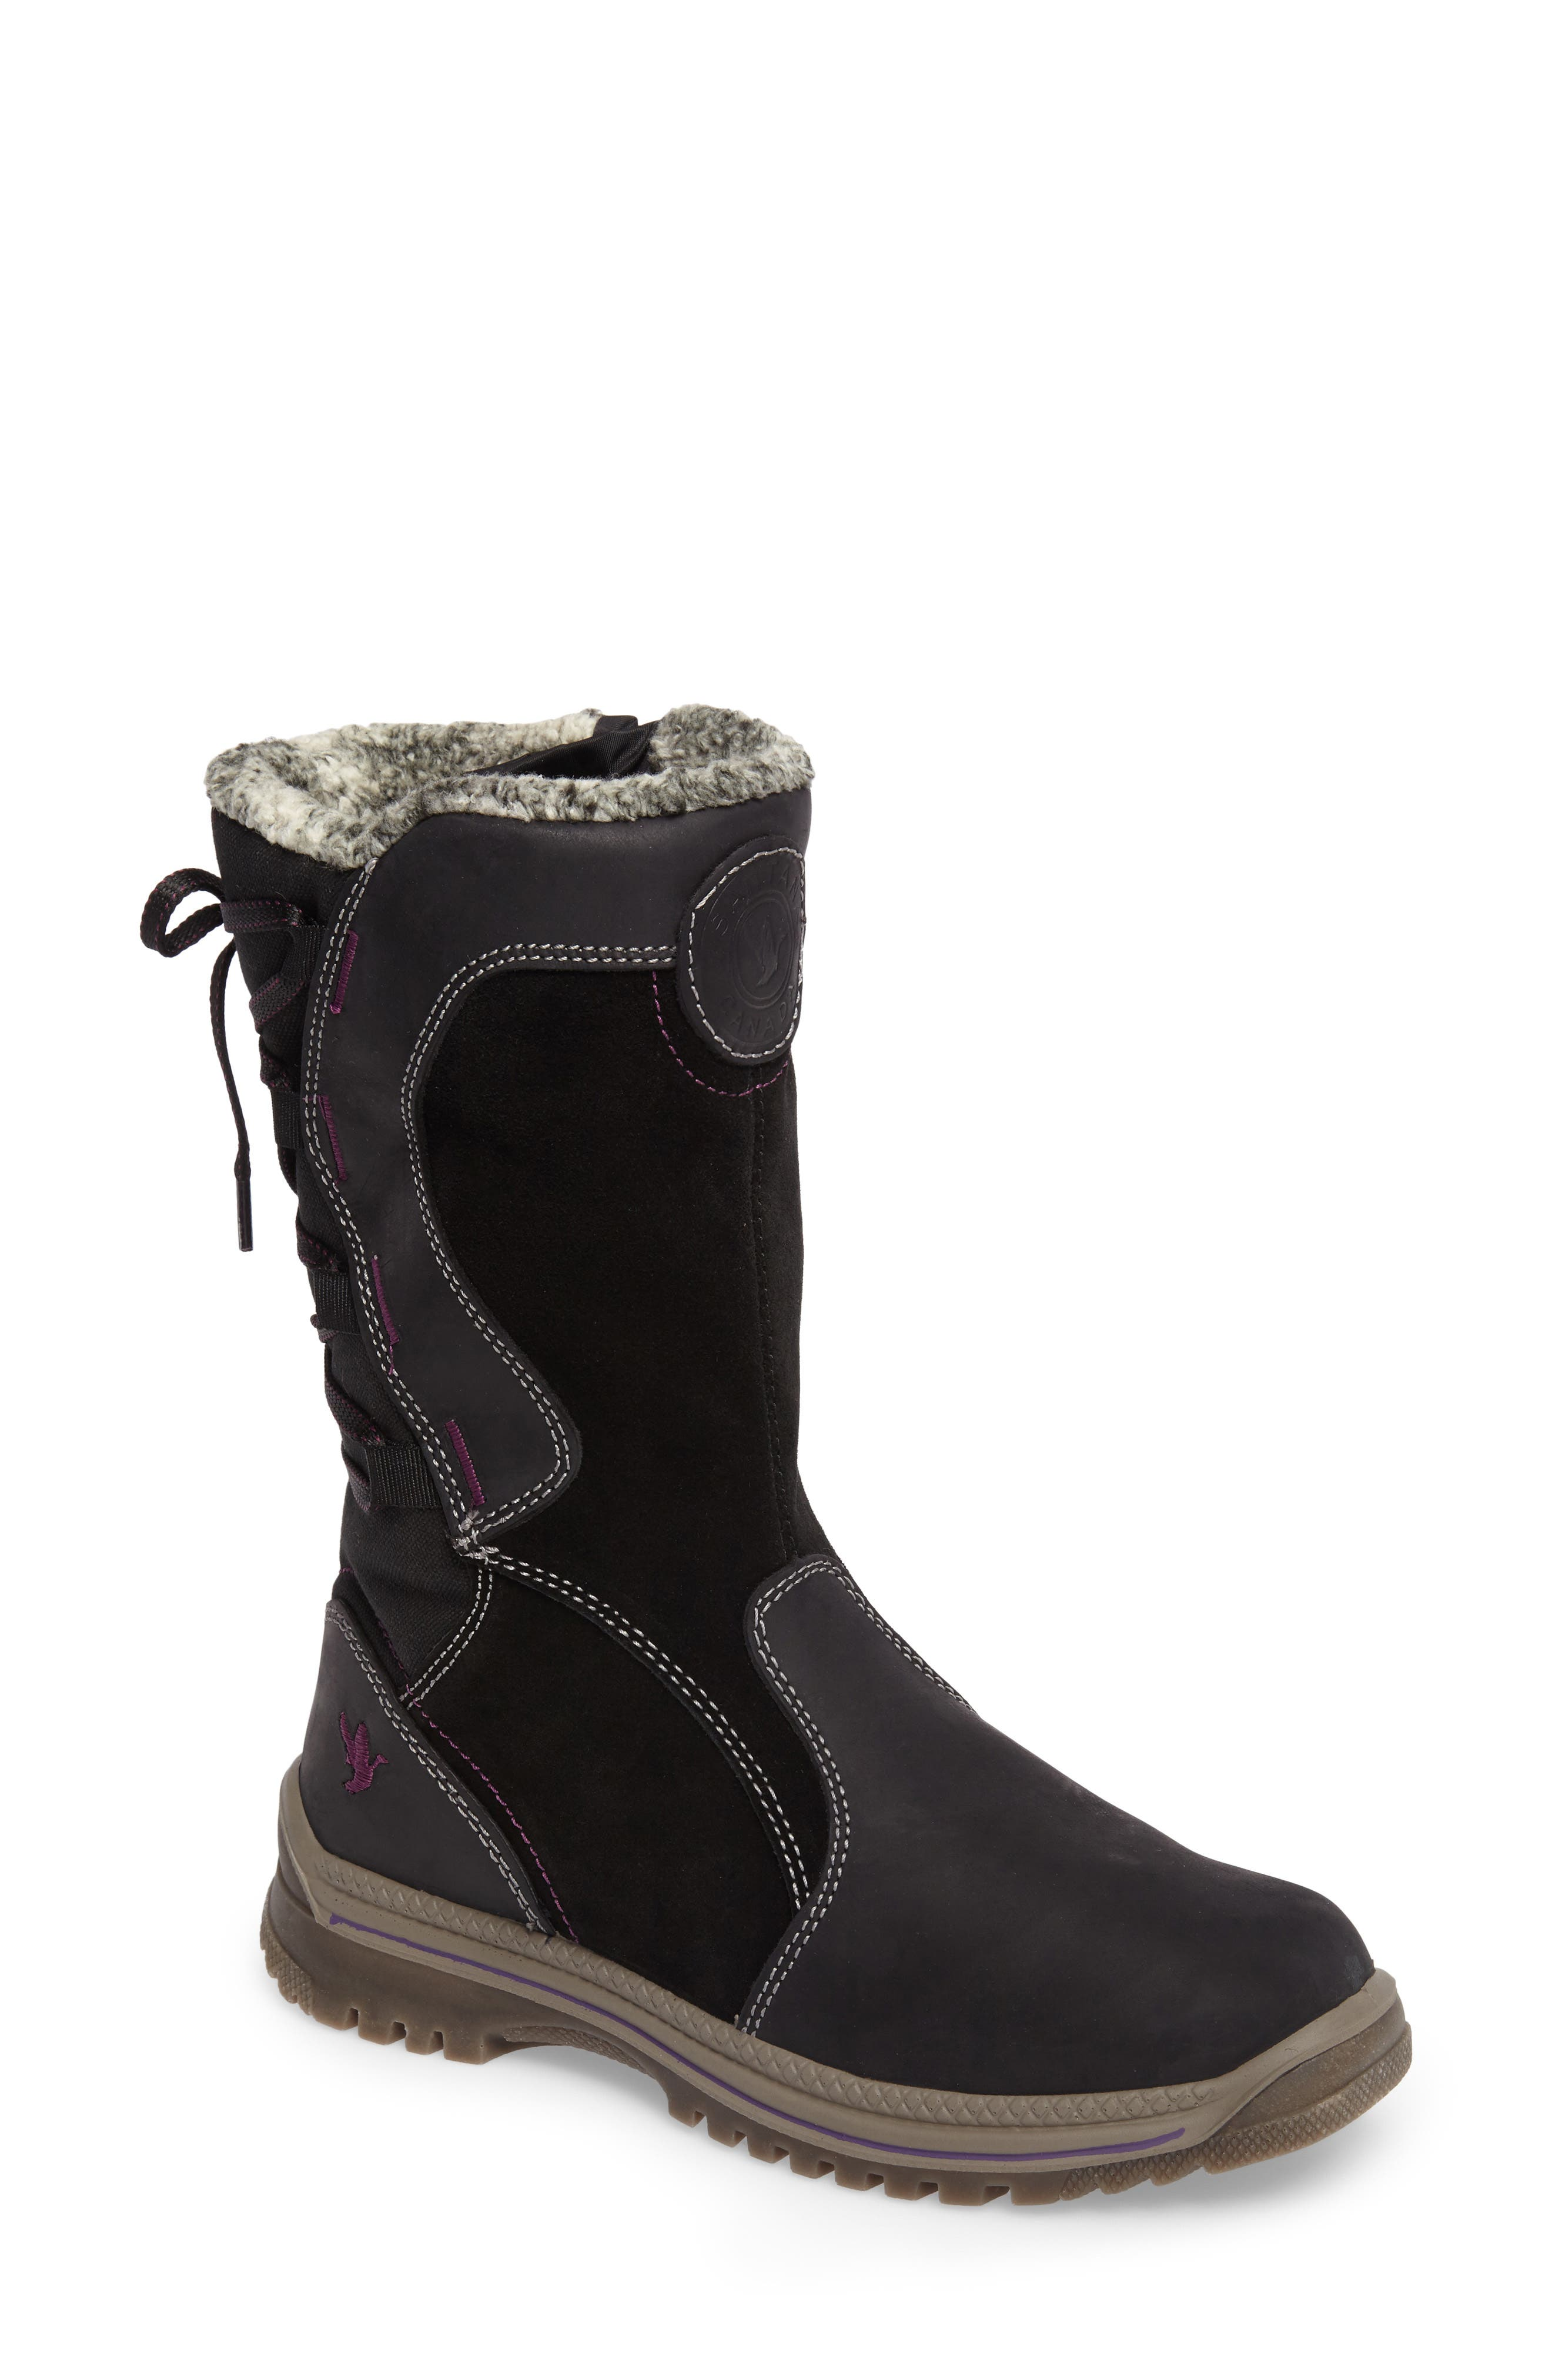 Mayer Faux Fur Lined Waterproof Boot,                             Main thumbnail 1, color,                             Black Leather